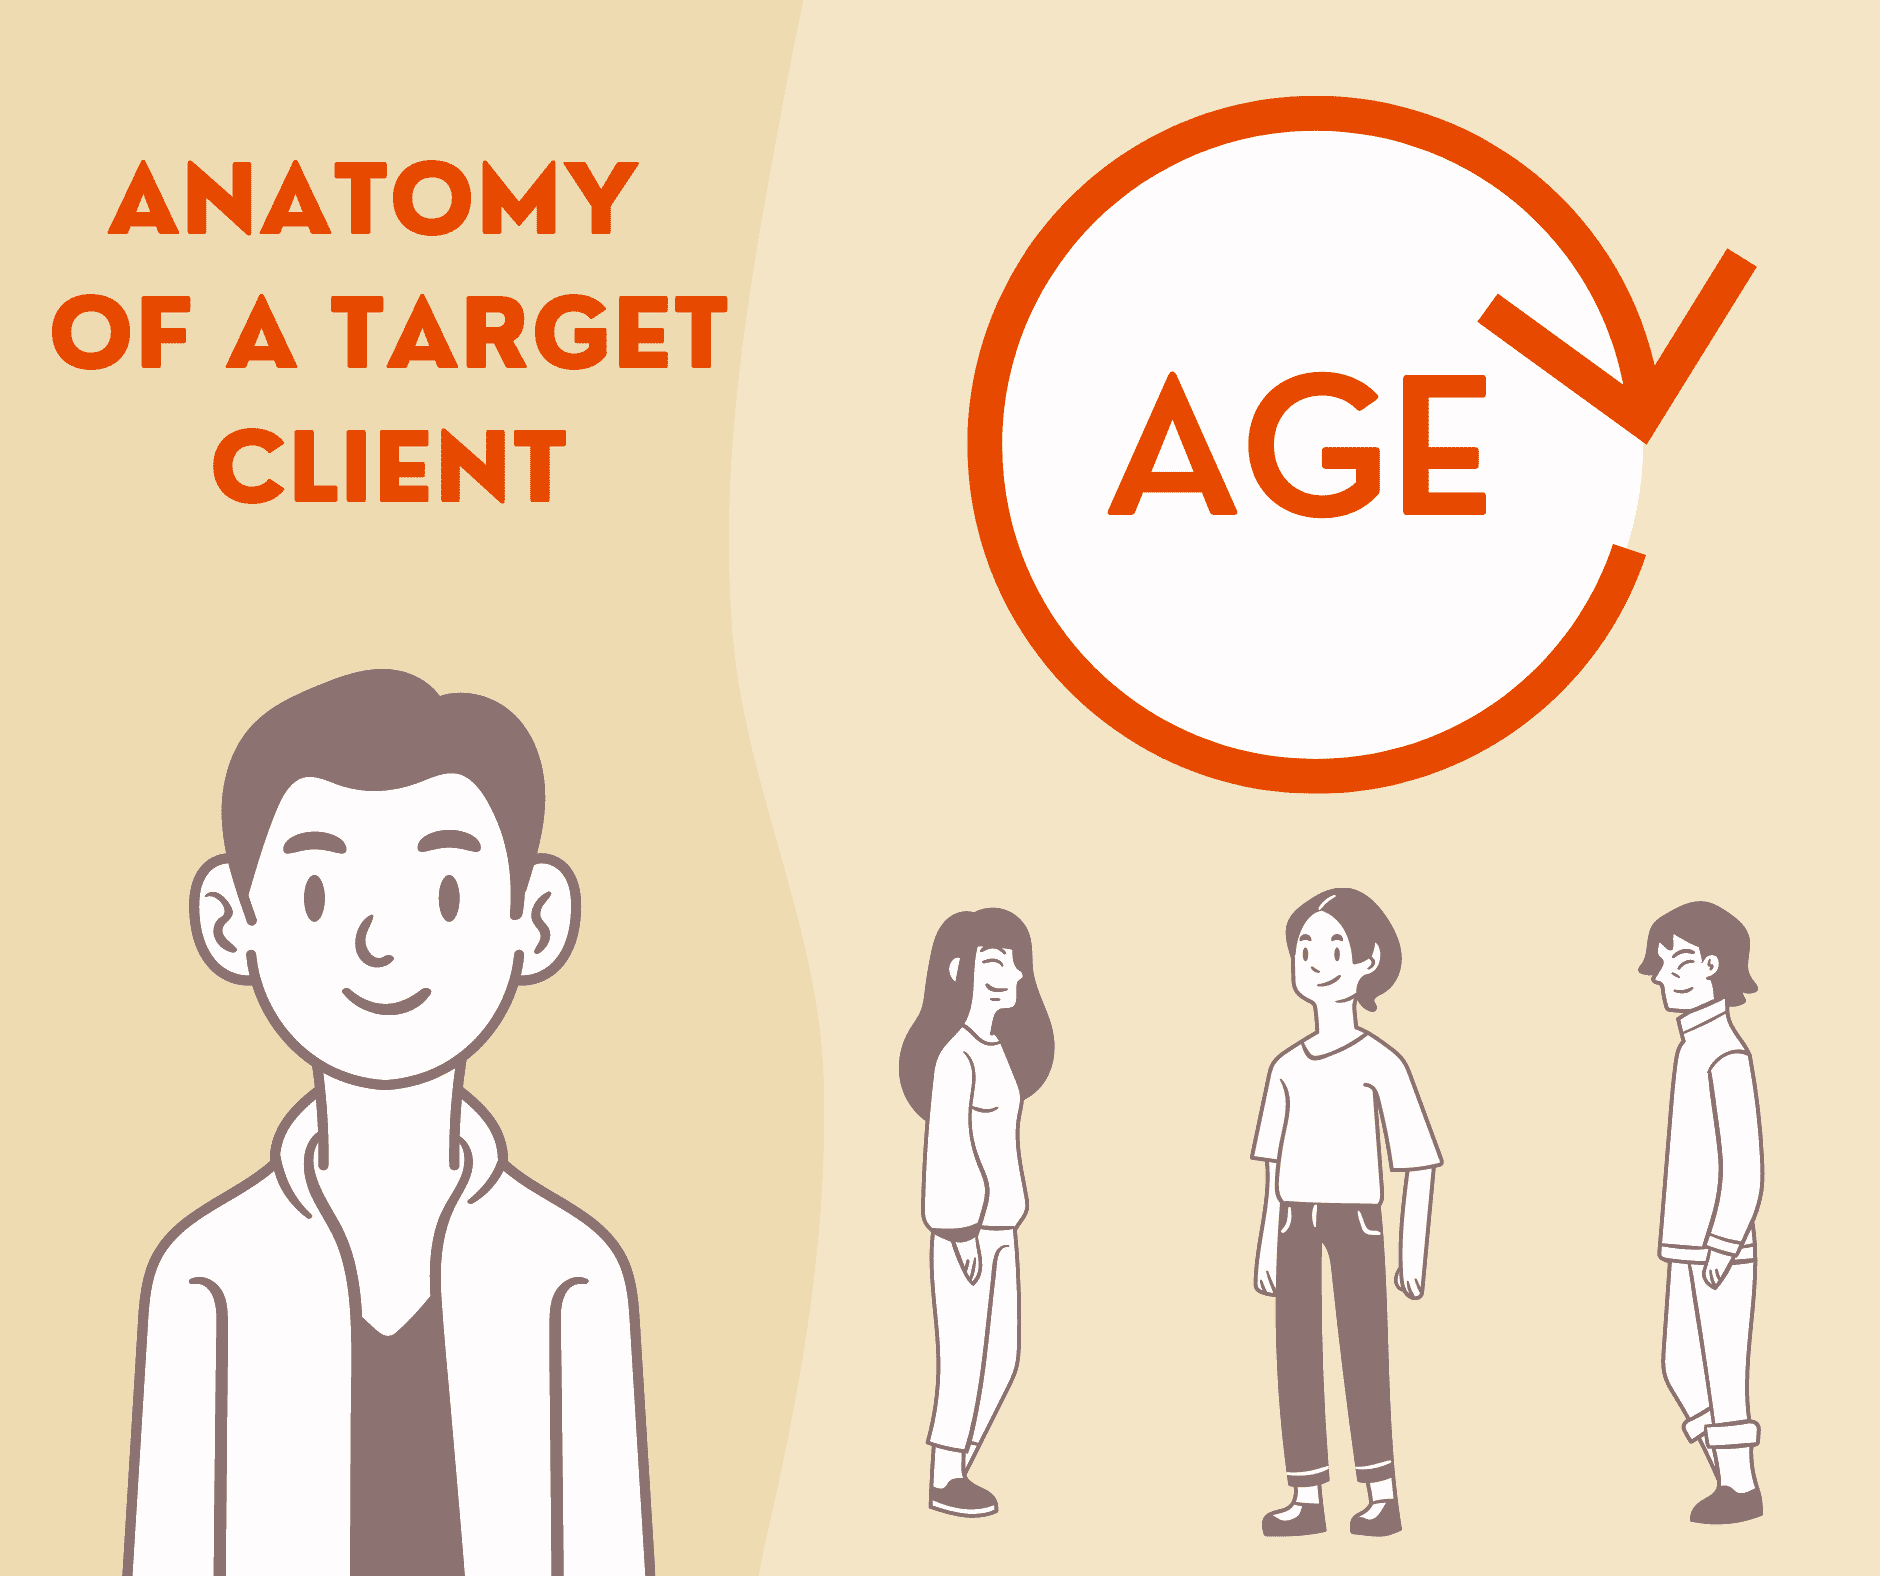 Age - Anatomy of a Target Client